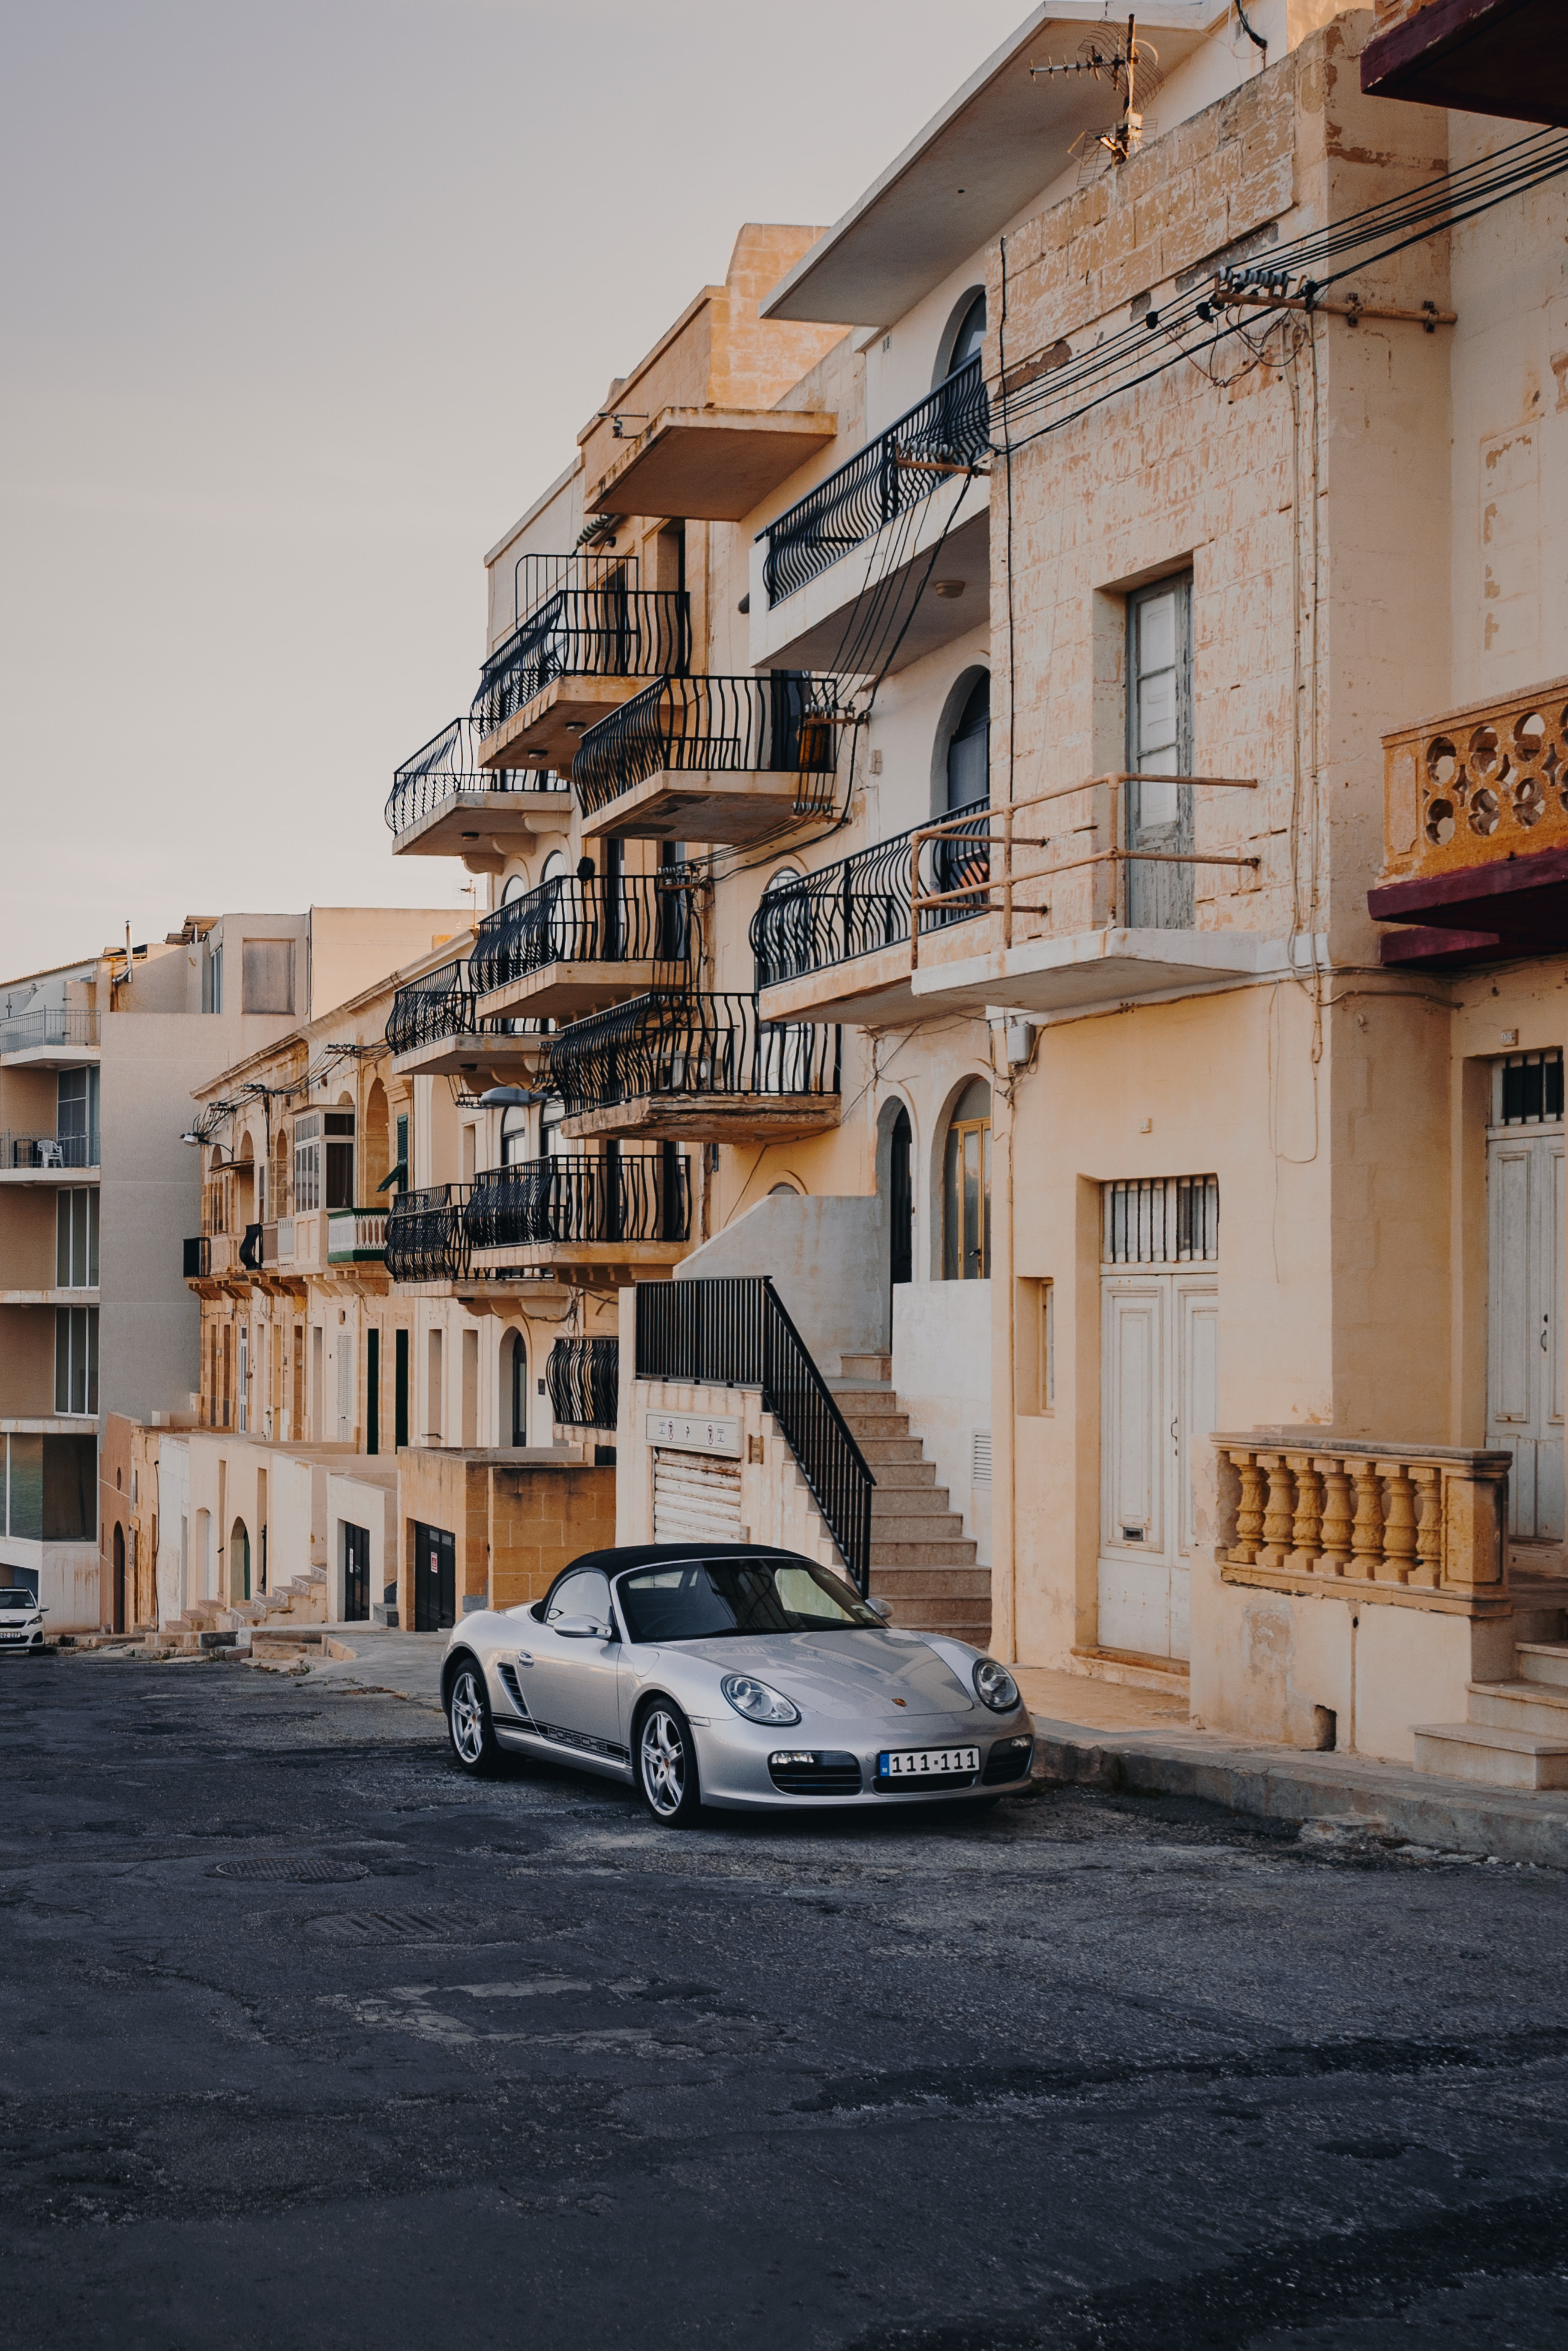 126707 download wallpaper Porsche, Sports, Cars, Building, Sports Car, Facade, Street, Malta, Marsalforn screensavers and pictures for free